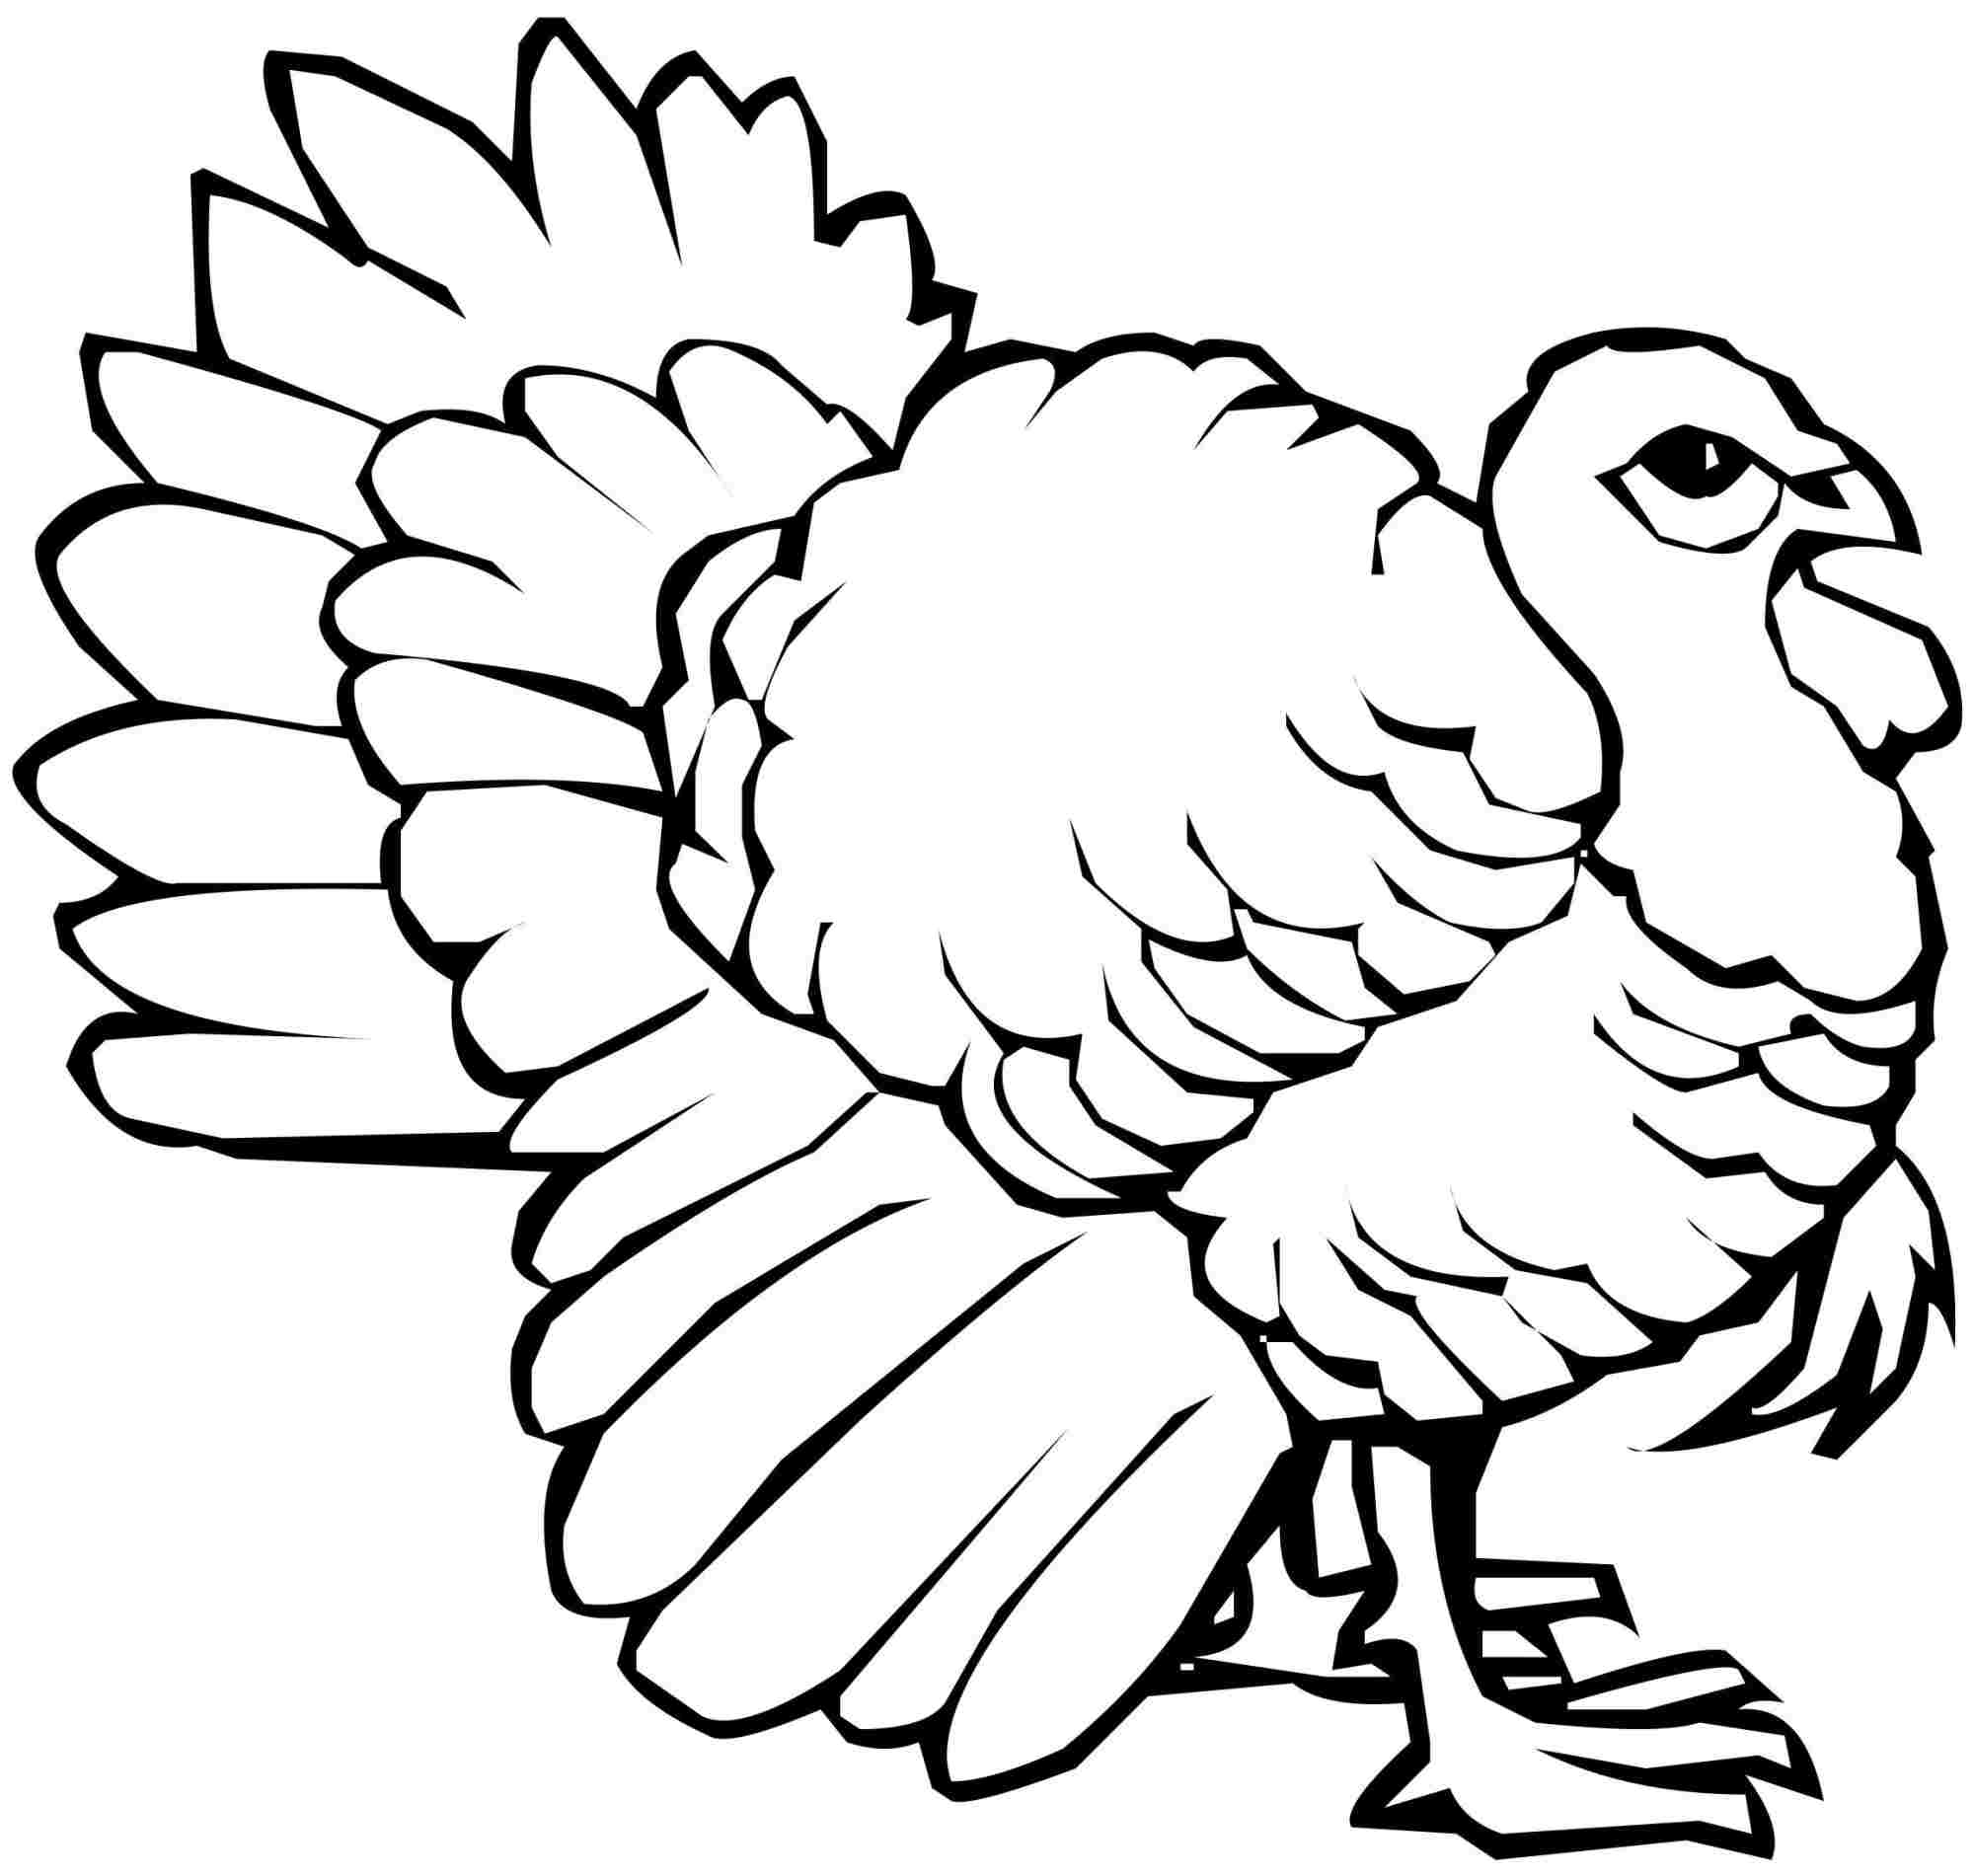 2000x1901 Thanksgiving Turkey Colouring Pages For Girls Boys Color